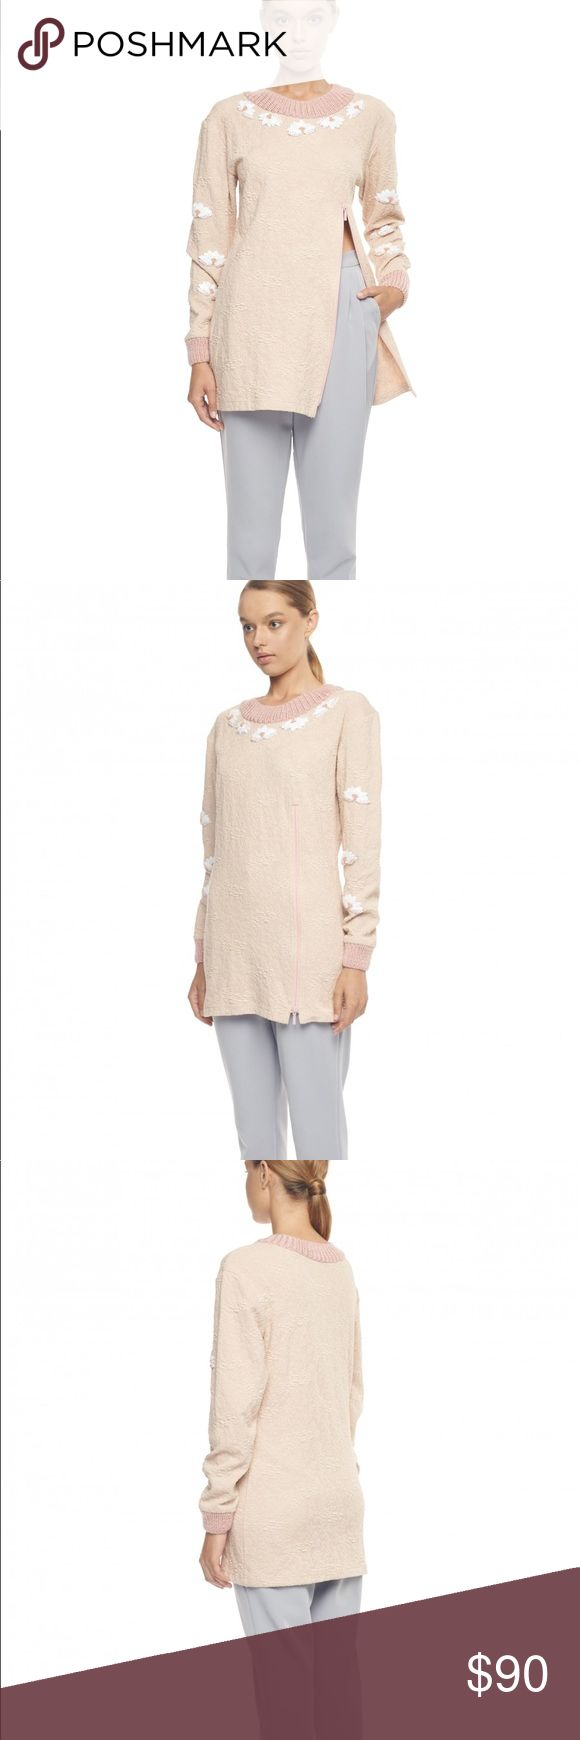 Pastel Pink Jersey Sweatshirt This pastel pink jersey sweatshirt featuring knit and floral details. Featuring a zip detail on the body, this piece allows you to unzip if it's a little warm, or to show off your favorite trousers. Paired with cropped trousers and nude heels, it's a fantastic feminine everyday sweatshirt. Tops Sweatshirts & Hoodies